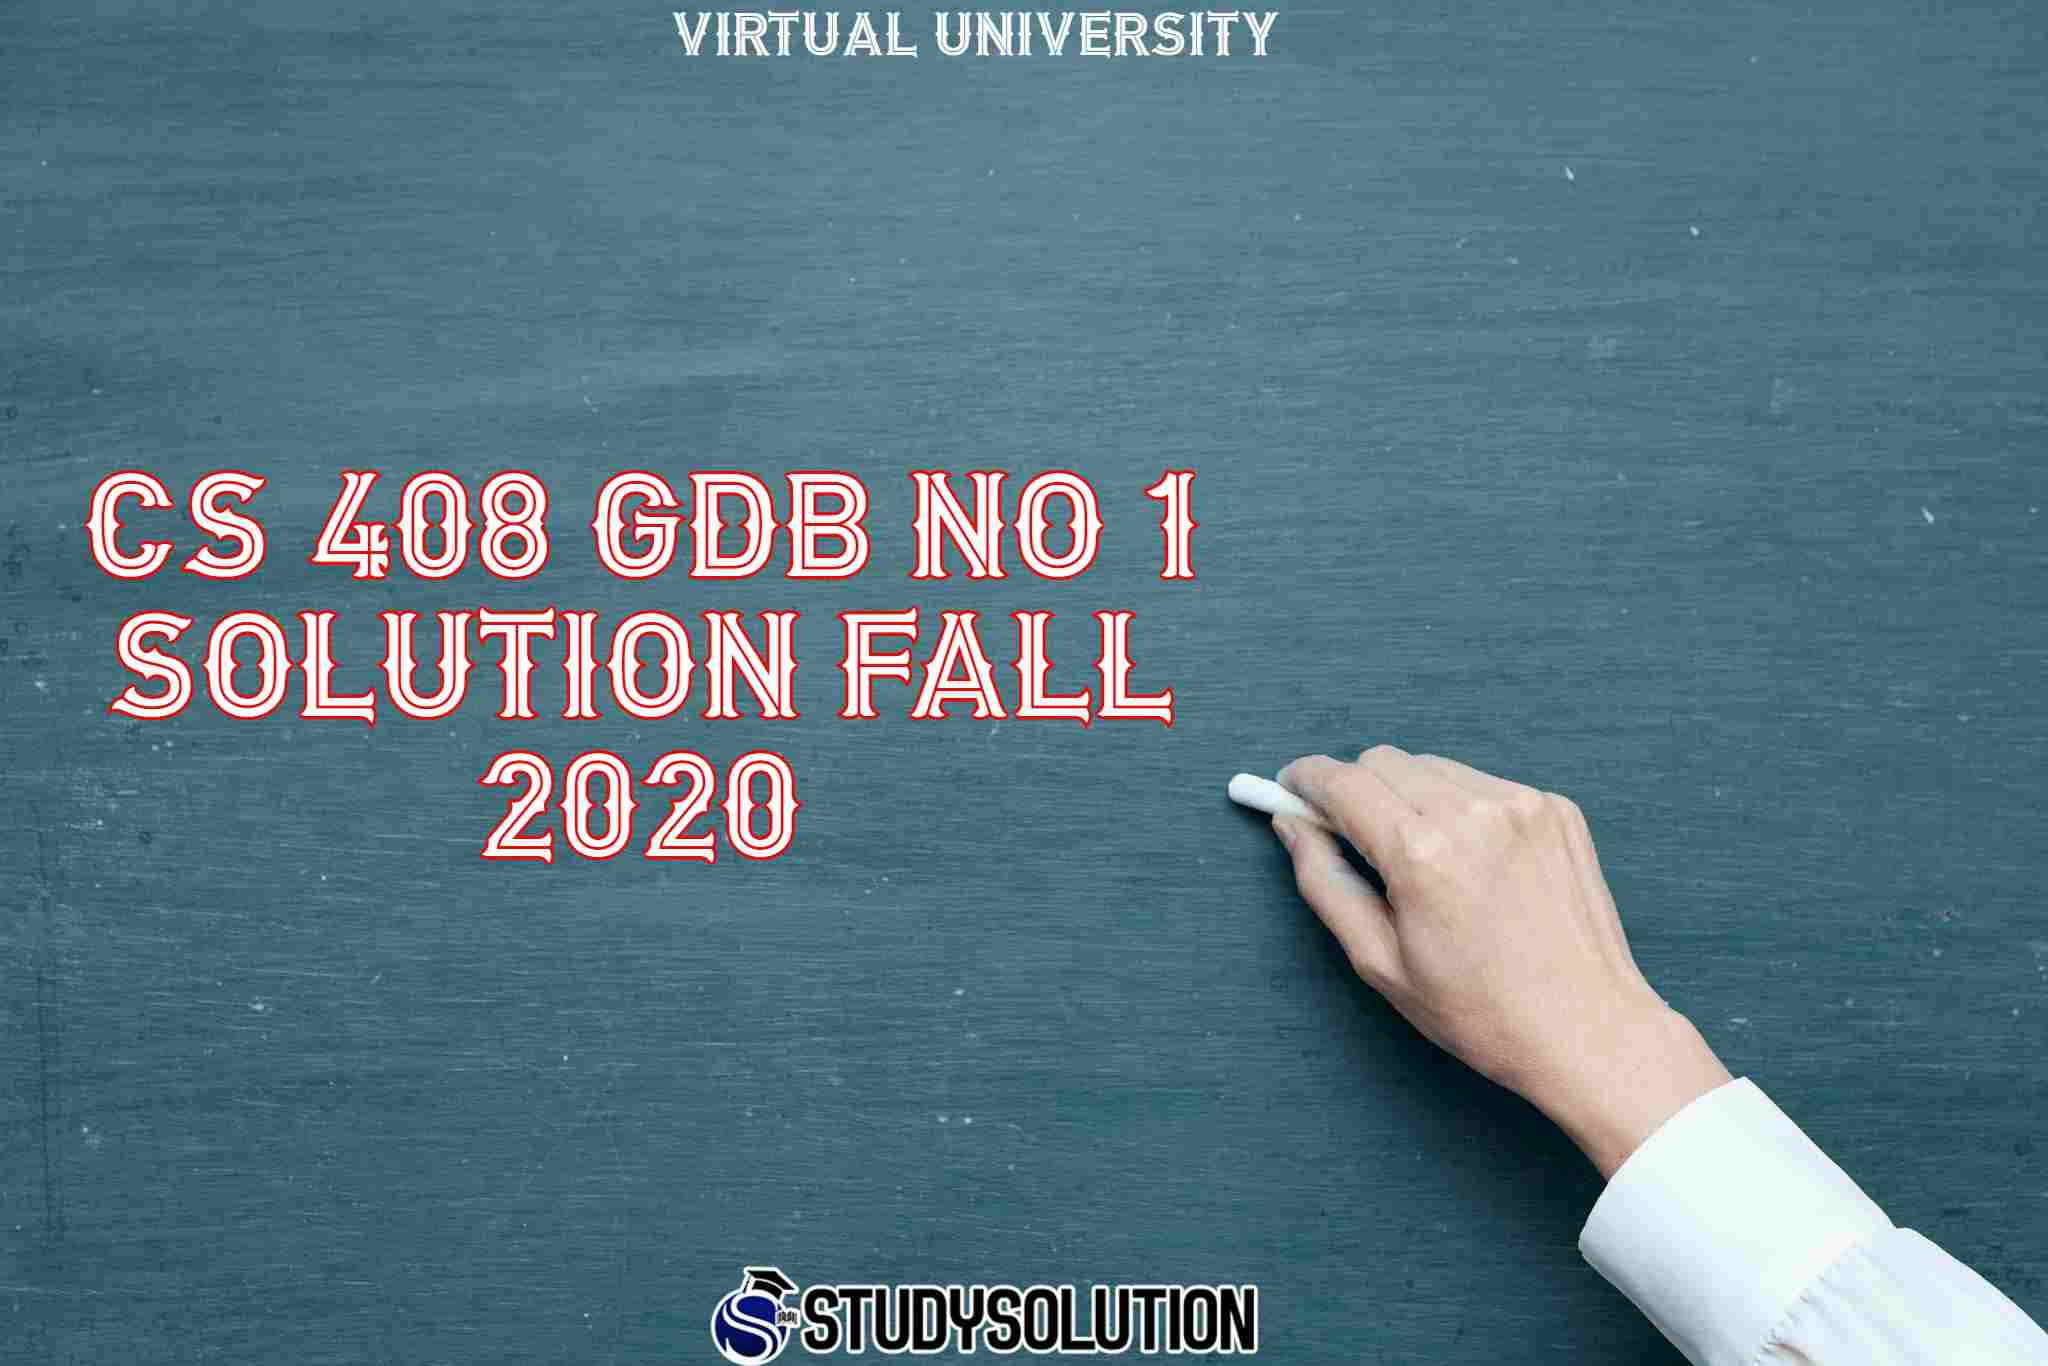 CS 408 GDB NO 1 Solution Fall 2020